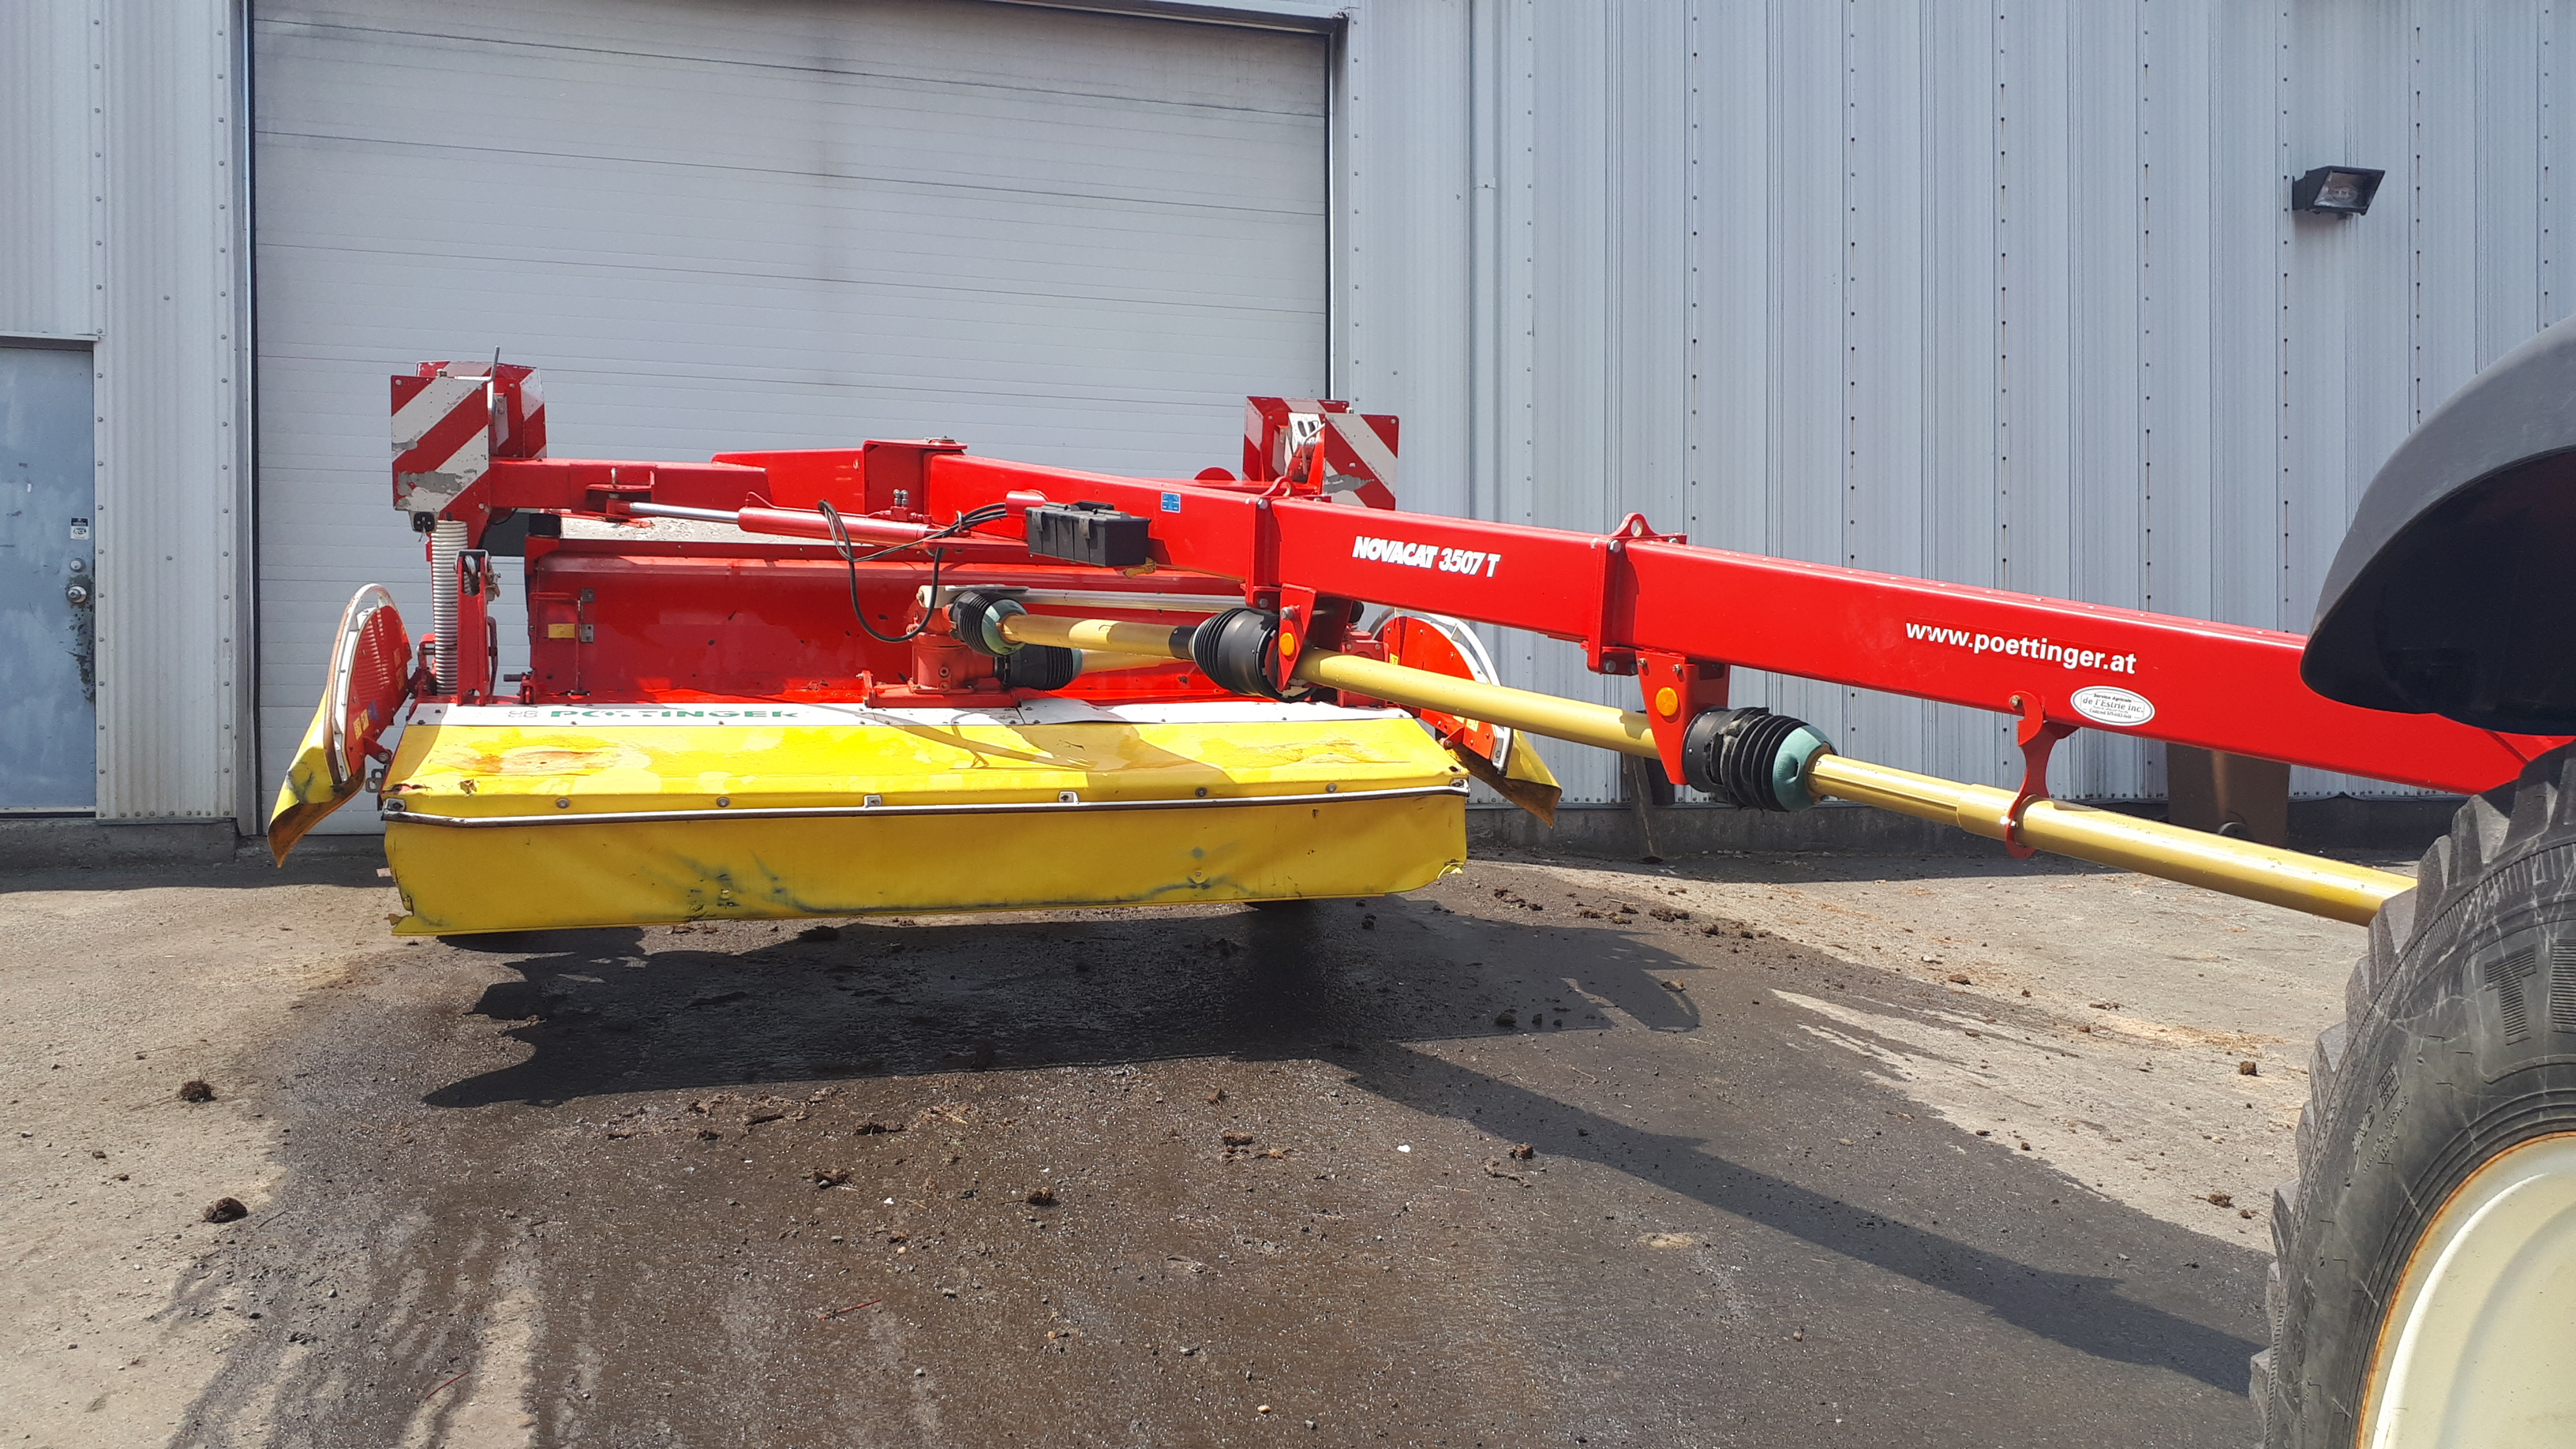 Faucheuse conditionneuse Pottinger 3507T